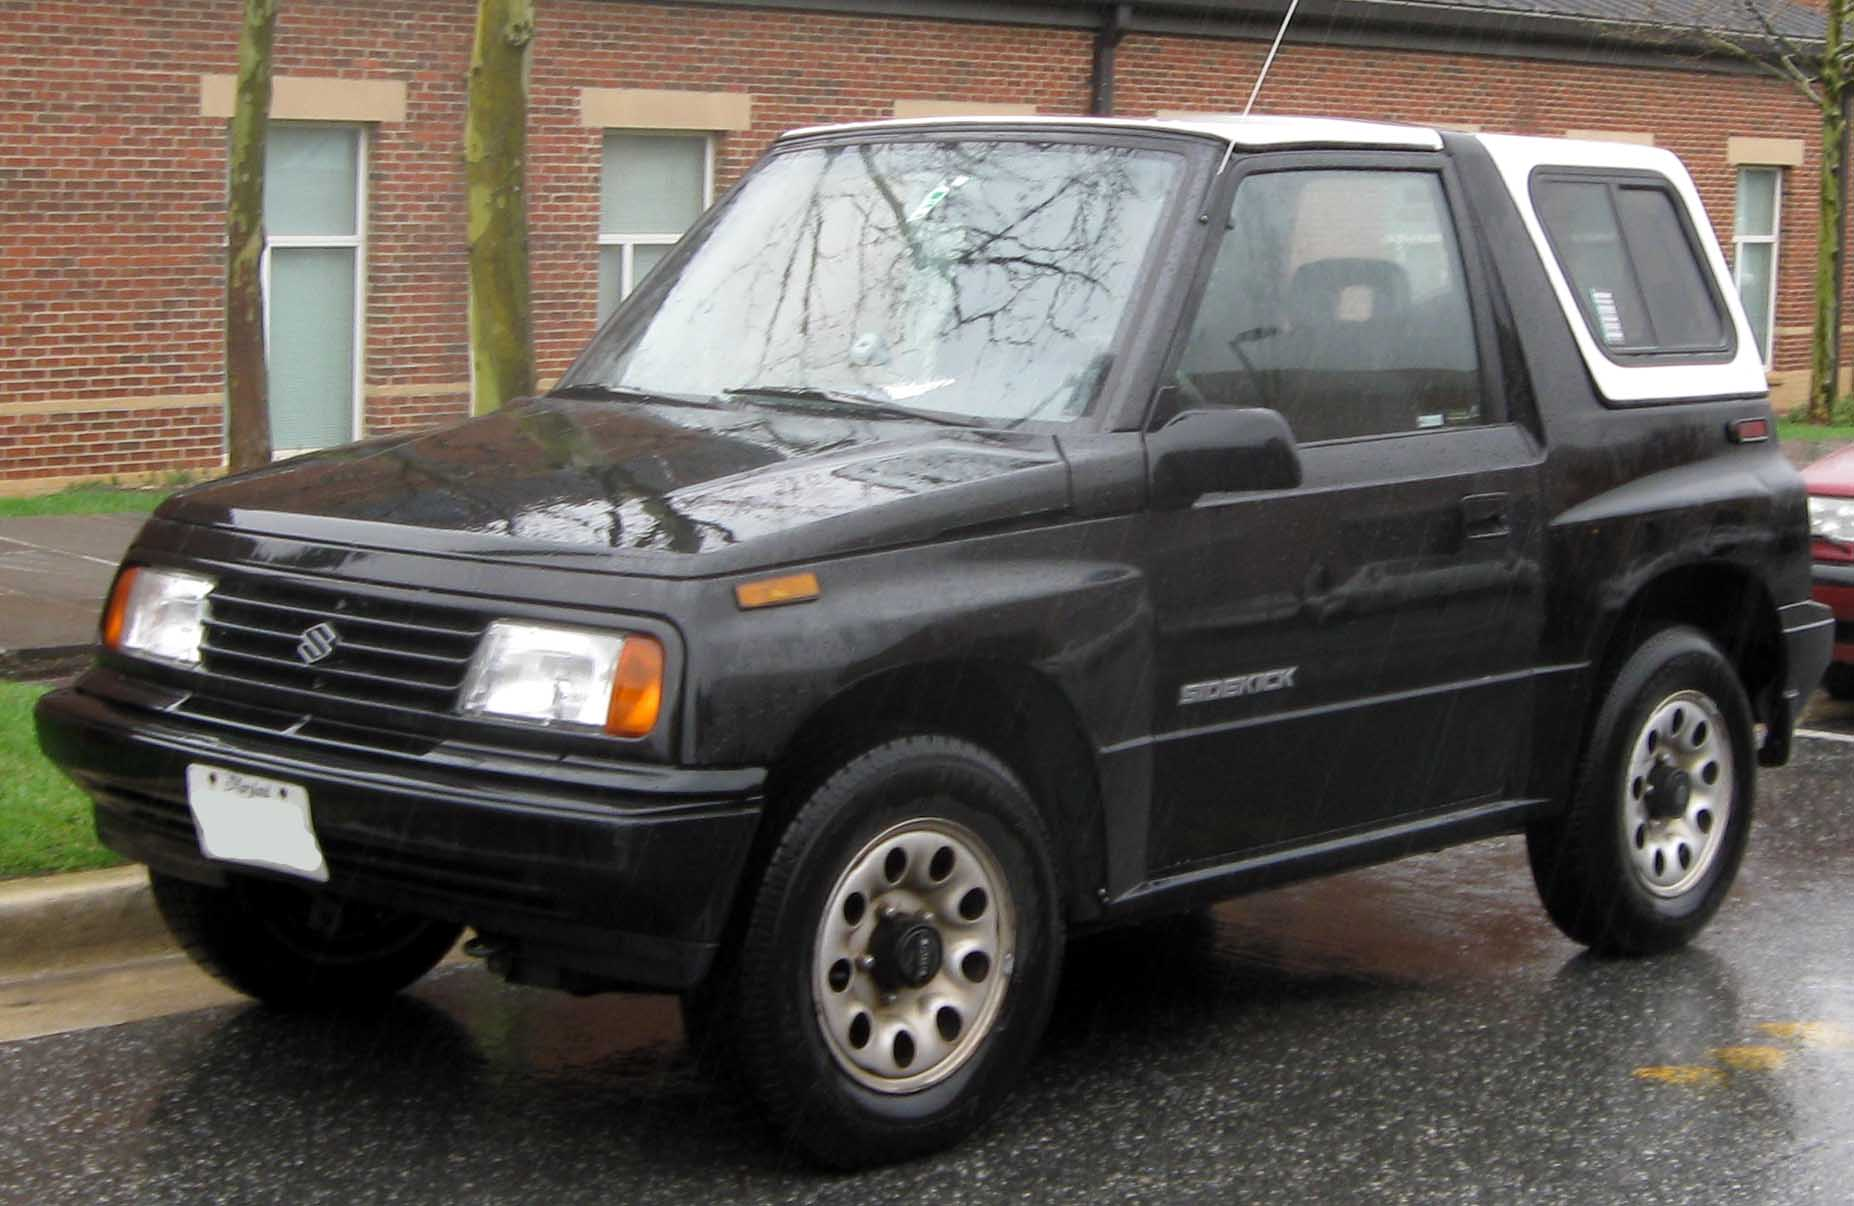 File:Suzuki Sidekick 2-door.jpg - Wikimedia Commons